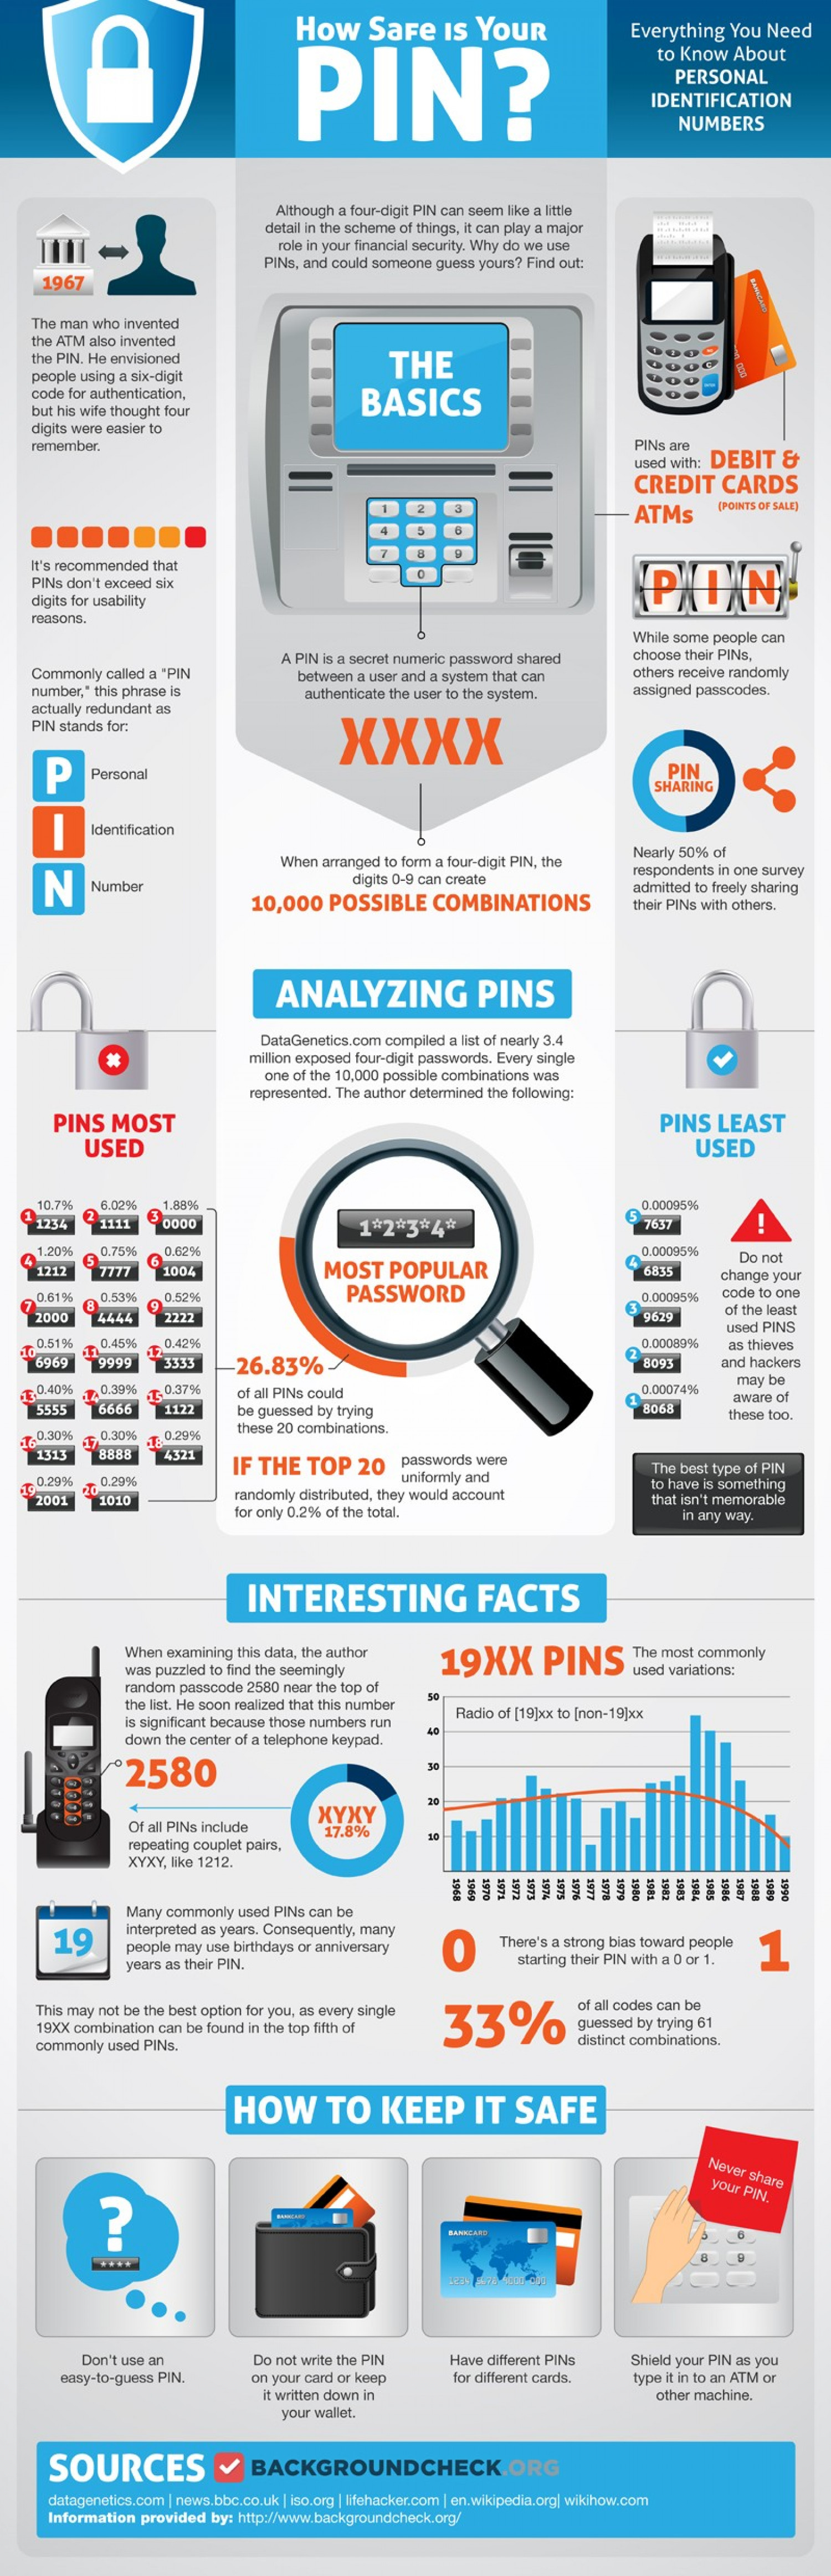 How Safe Is Your PIN? Infographic